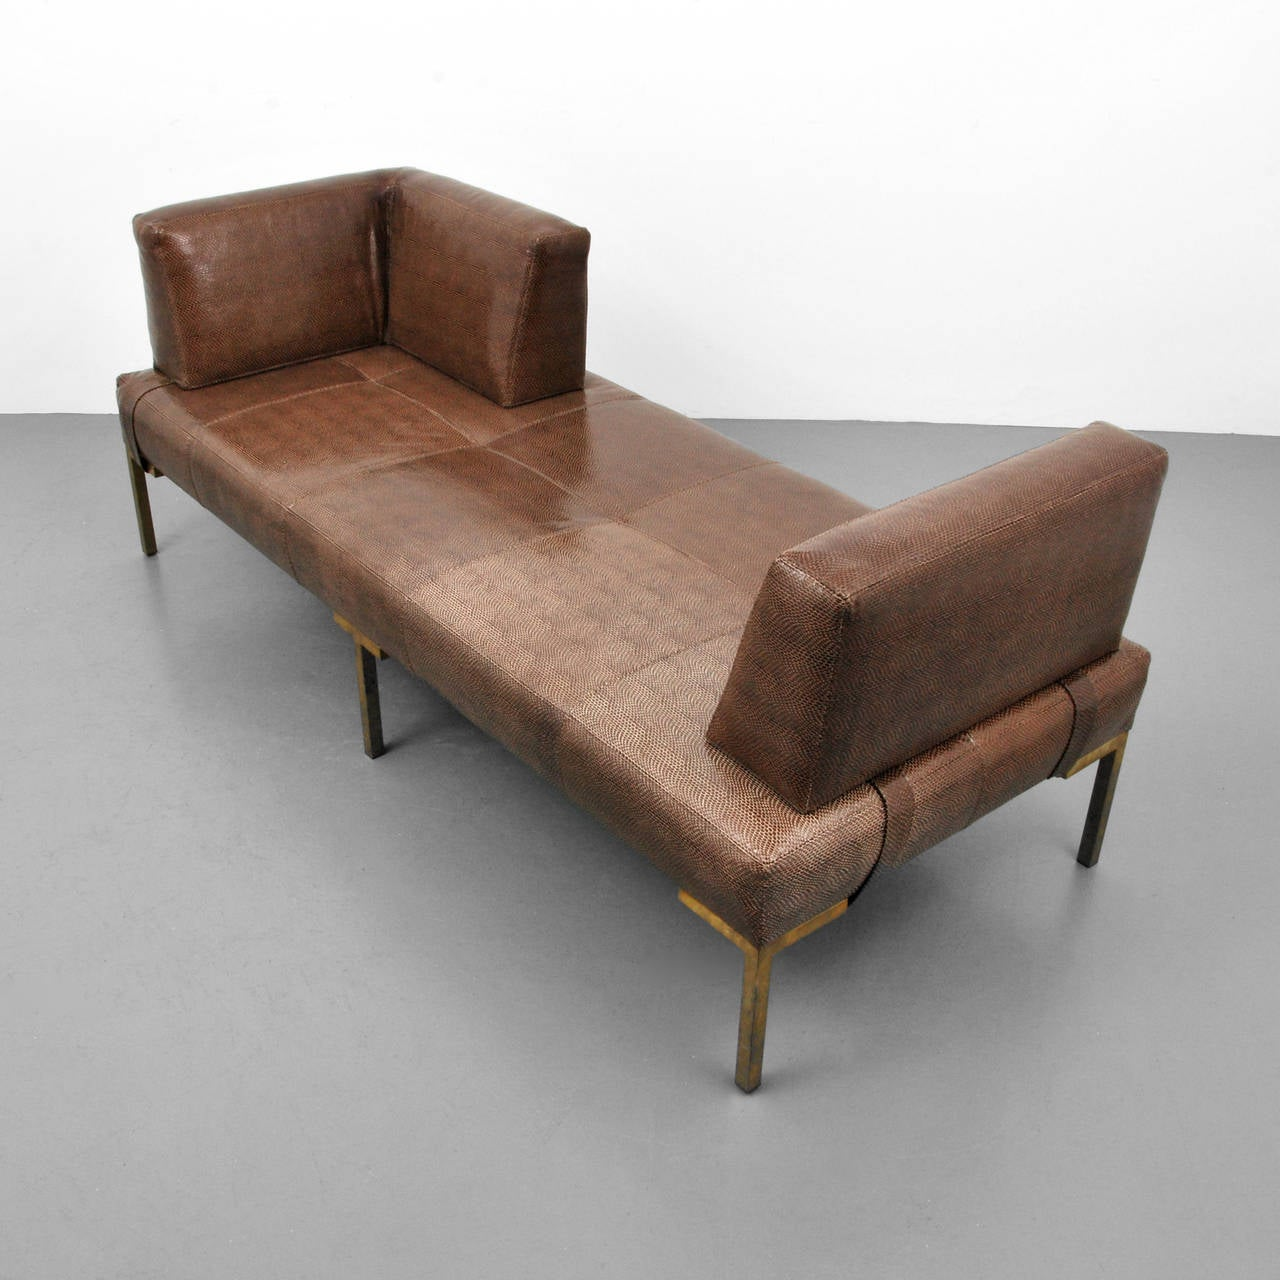 Luigi Gentile Leather Daybeds or Chaise Lounges, Two Available 3